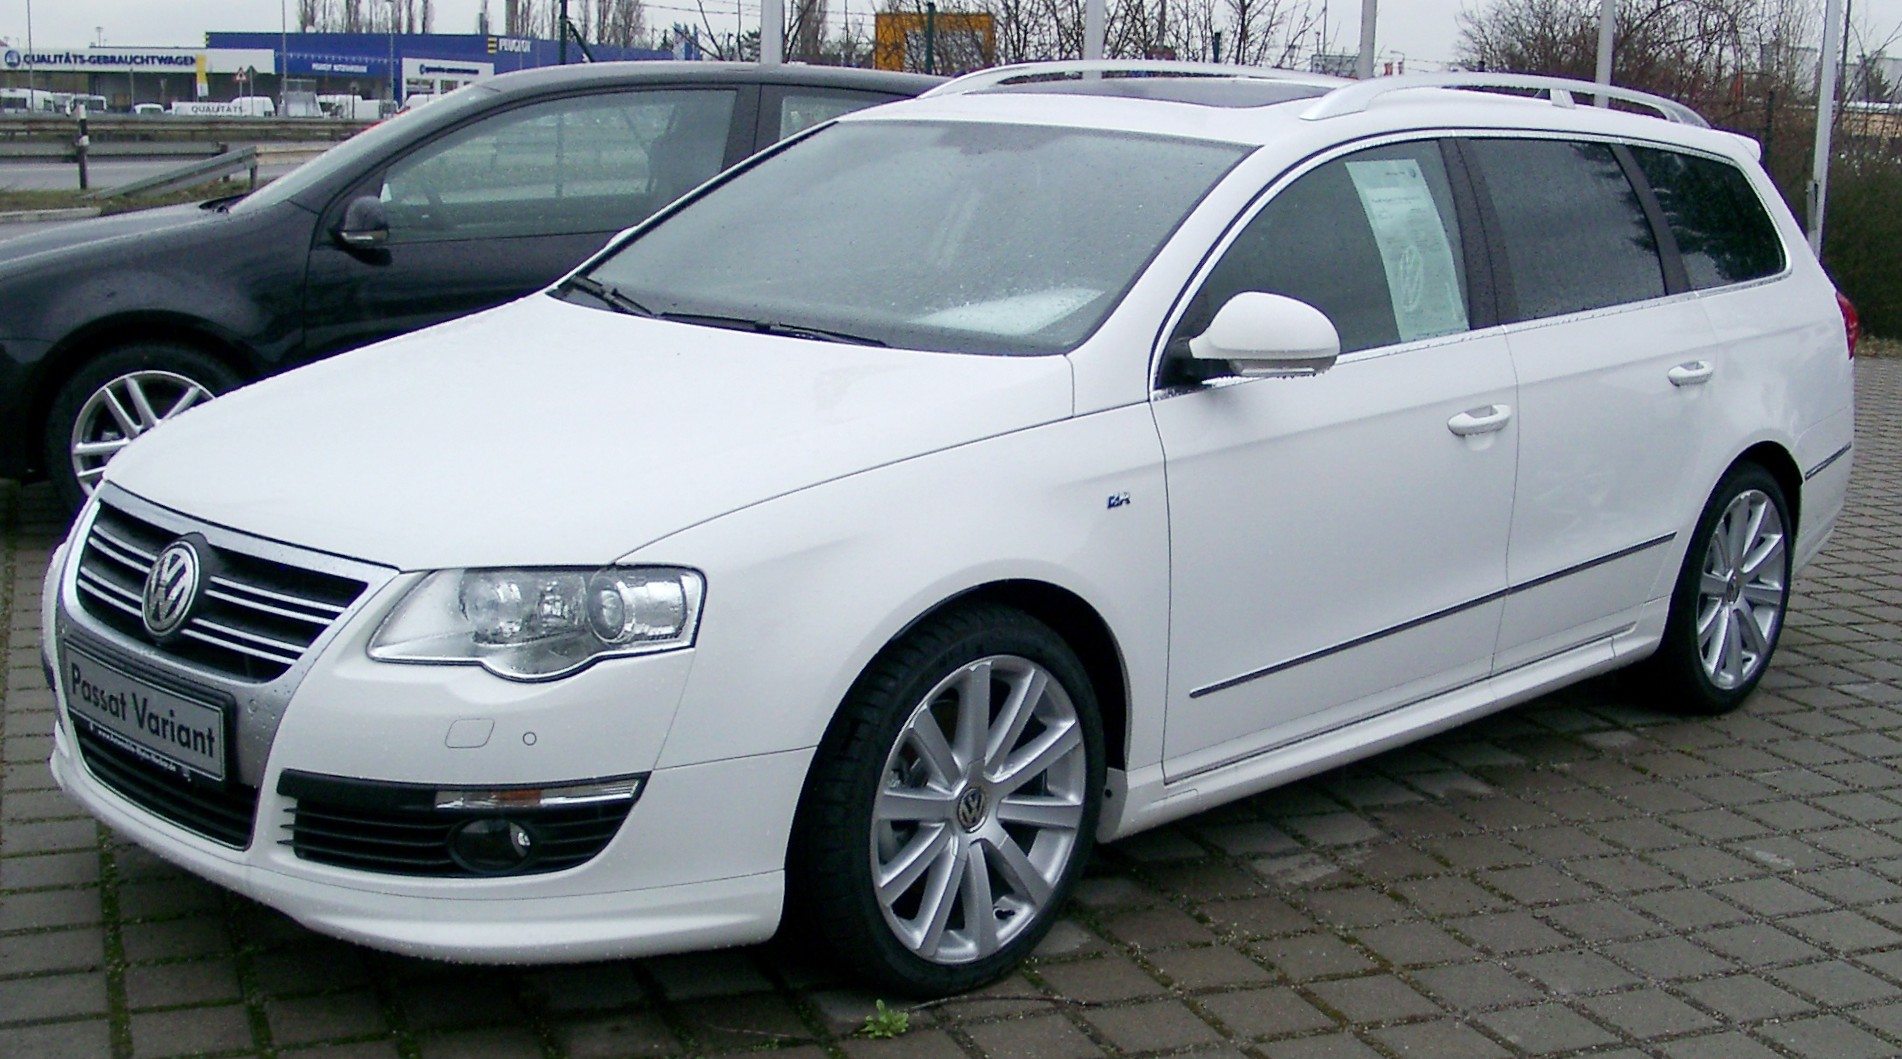 Volkswagen Passat Variant 2008 photo - 2